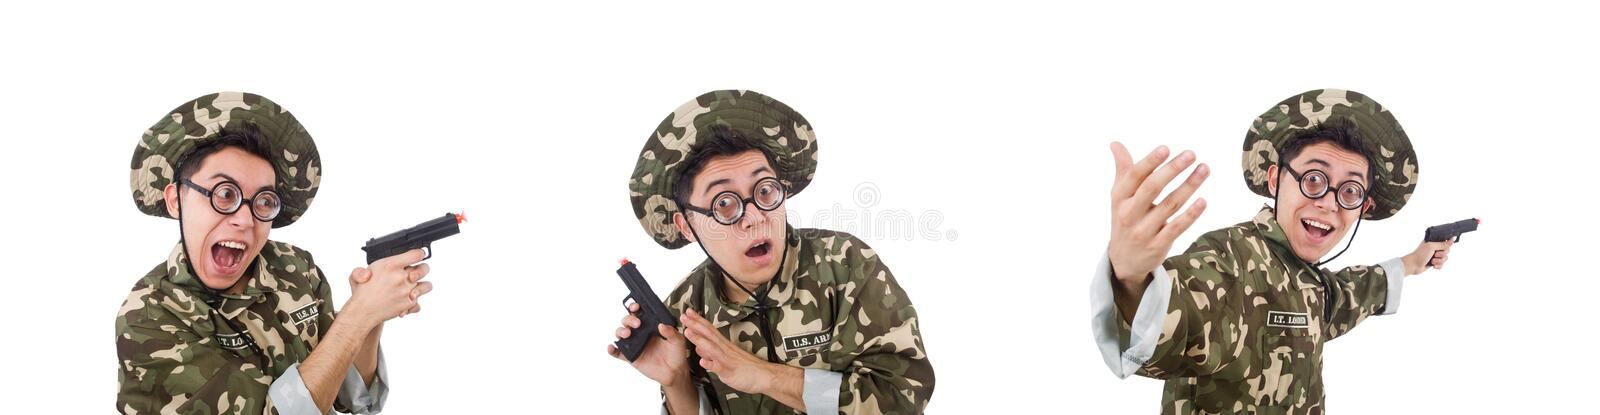 Funny soldier isolated on the white. The funny soldier isolated on the white stock photos